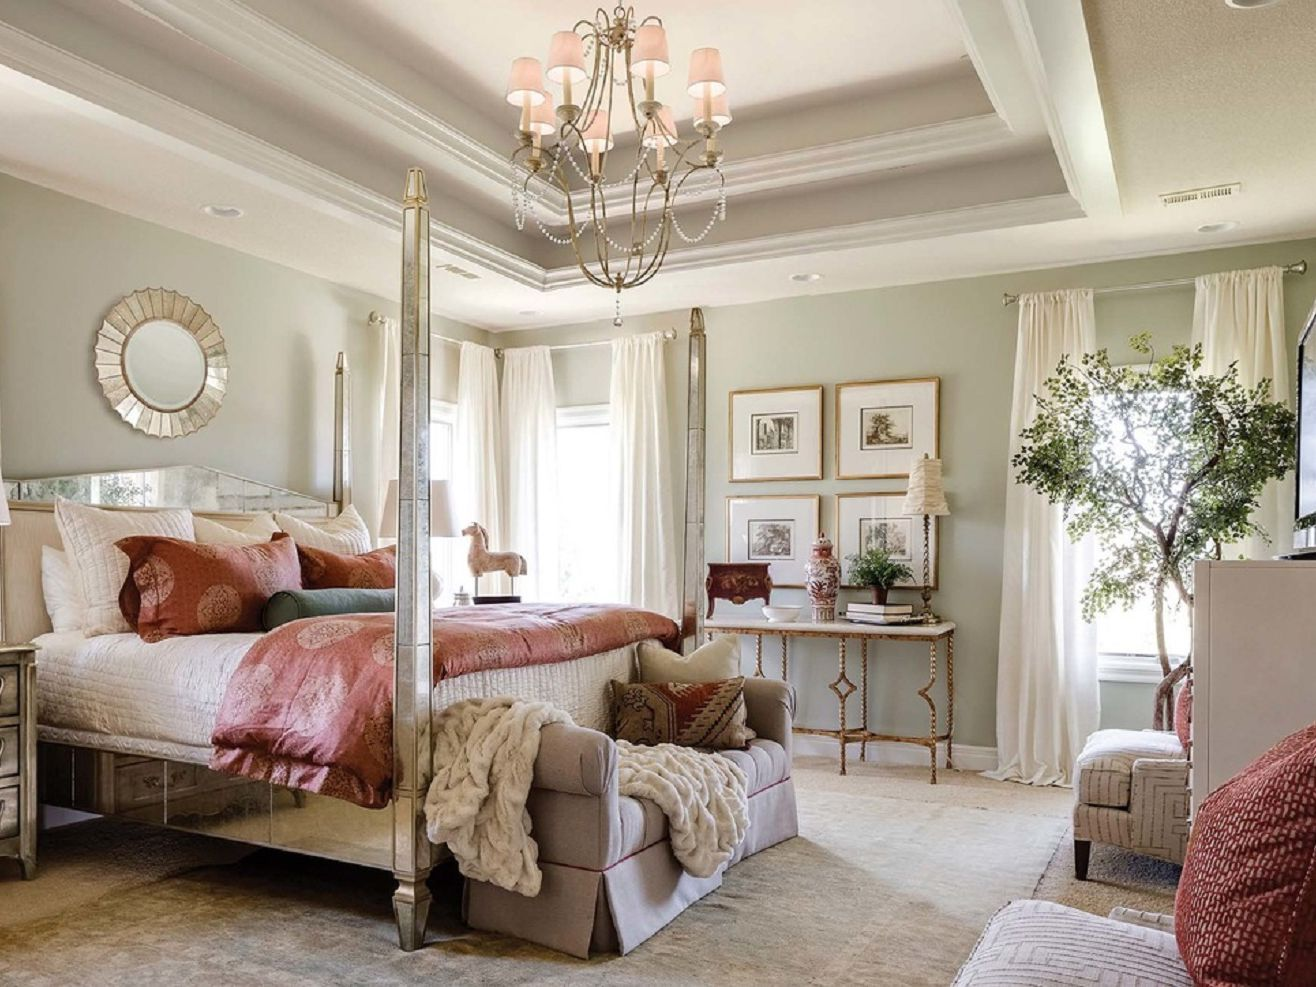 10 unexpected places to decorate your home with indoor.htm master bedroom design ideas and photos  master bedroom design ideas and photos